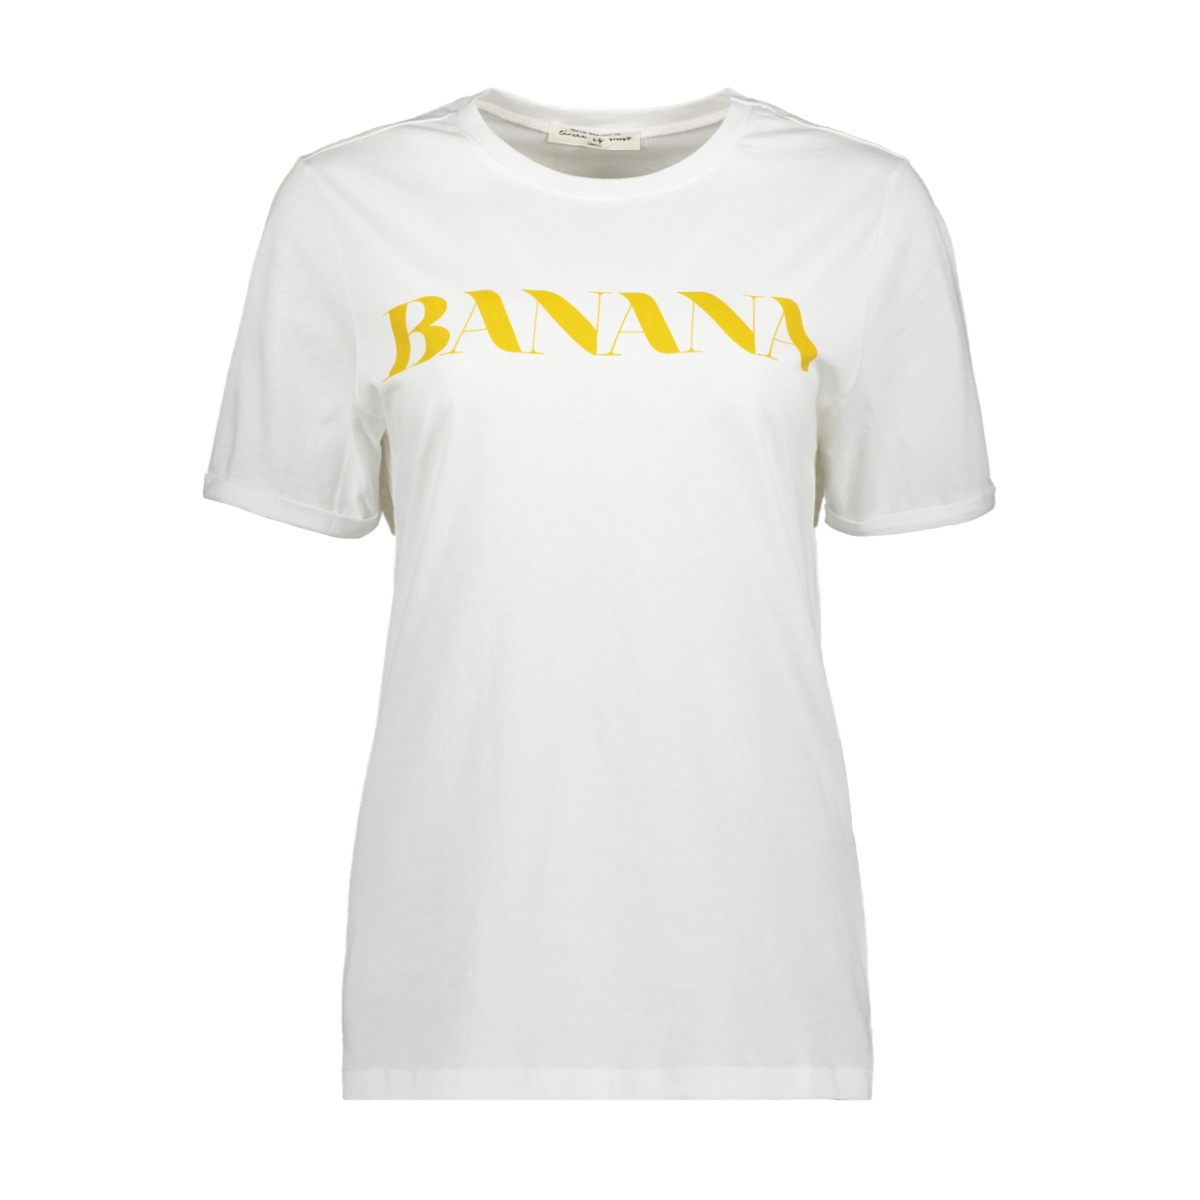 paradise tee s19 45 circle of trust t-shirt 3722 banana